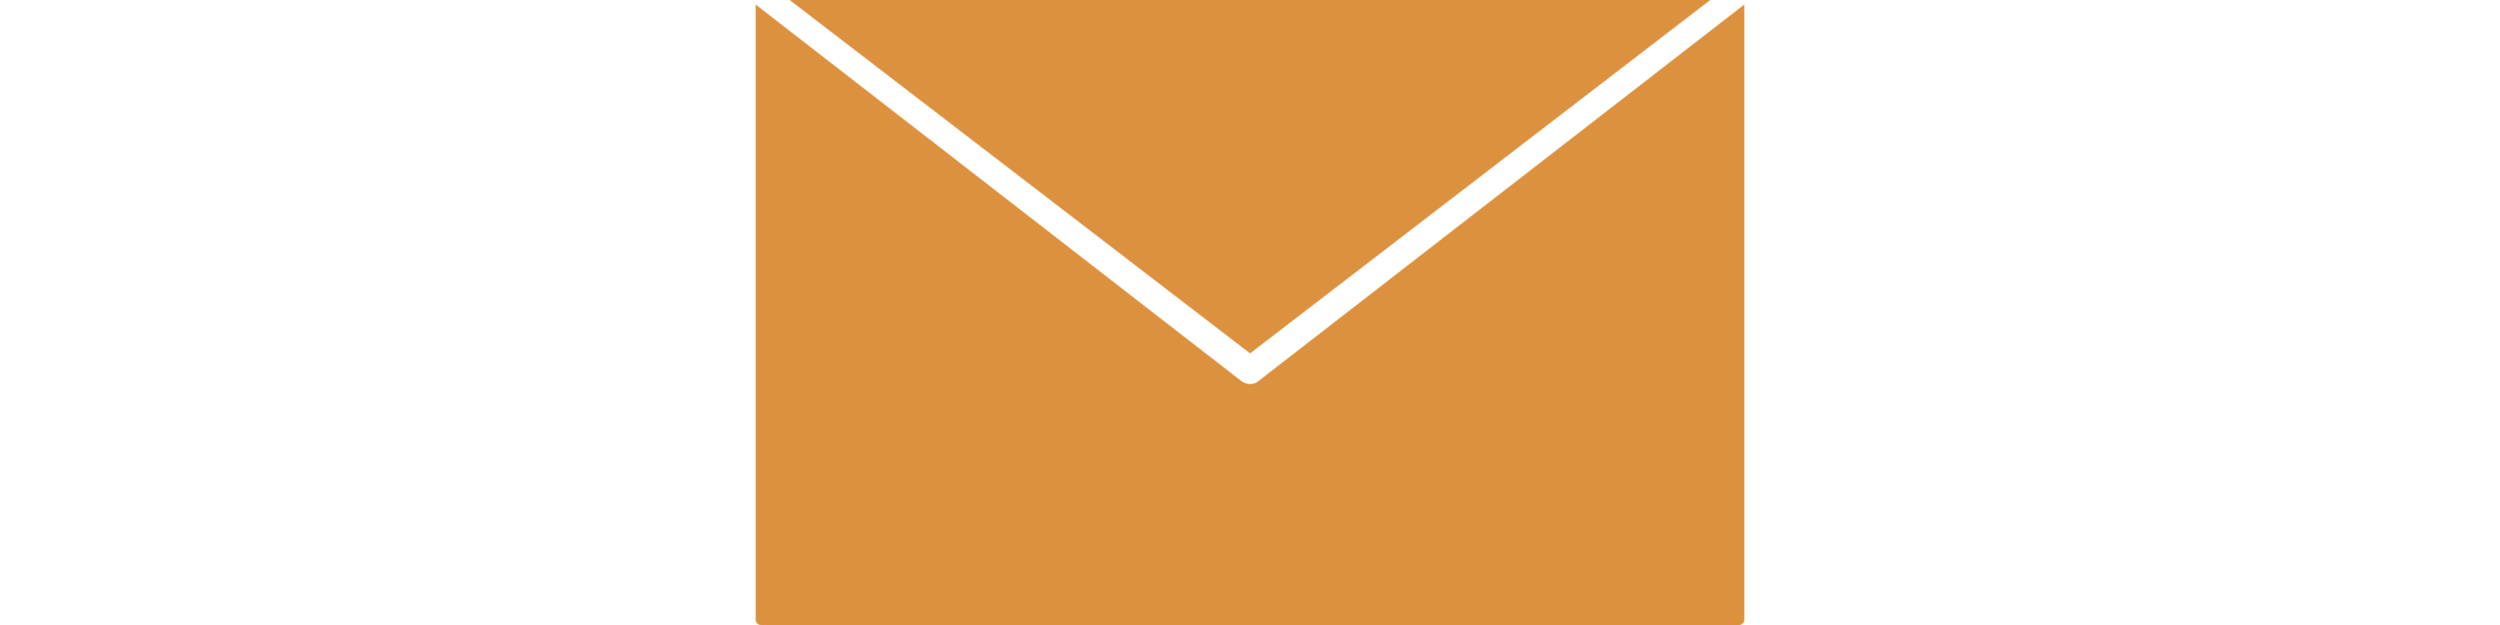 Giving_Envelope.png